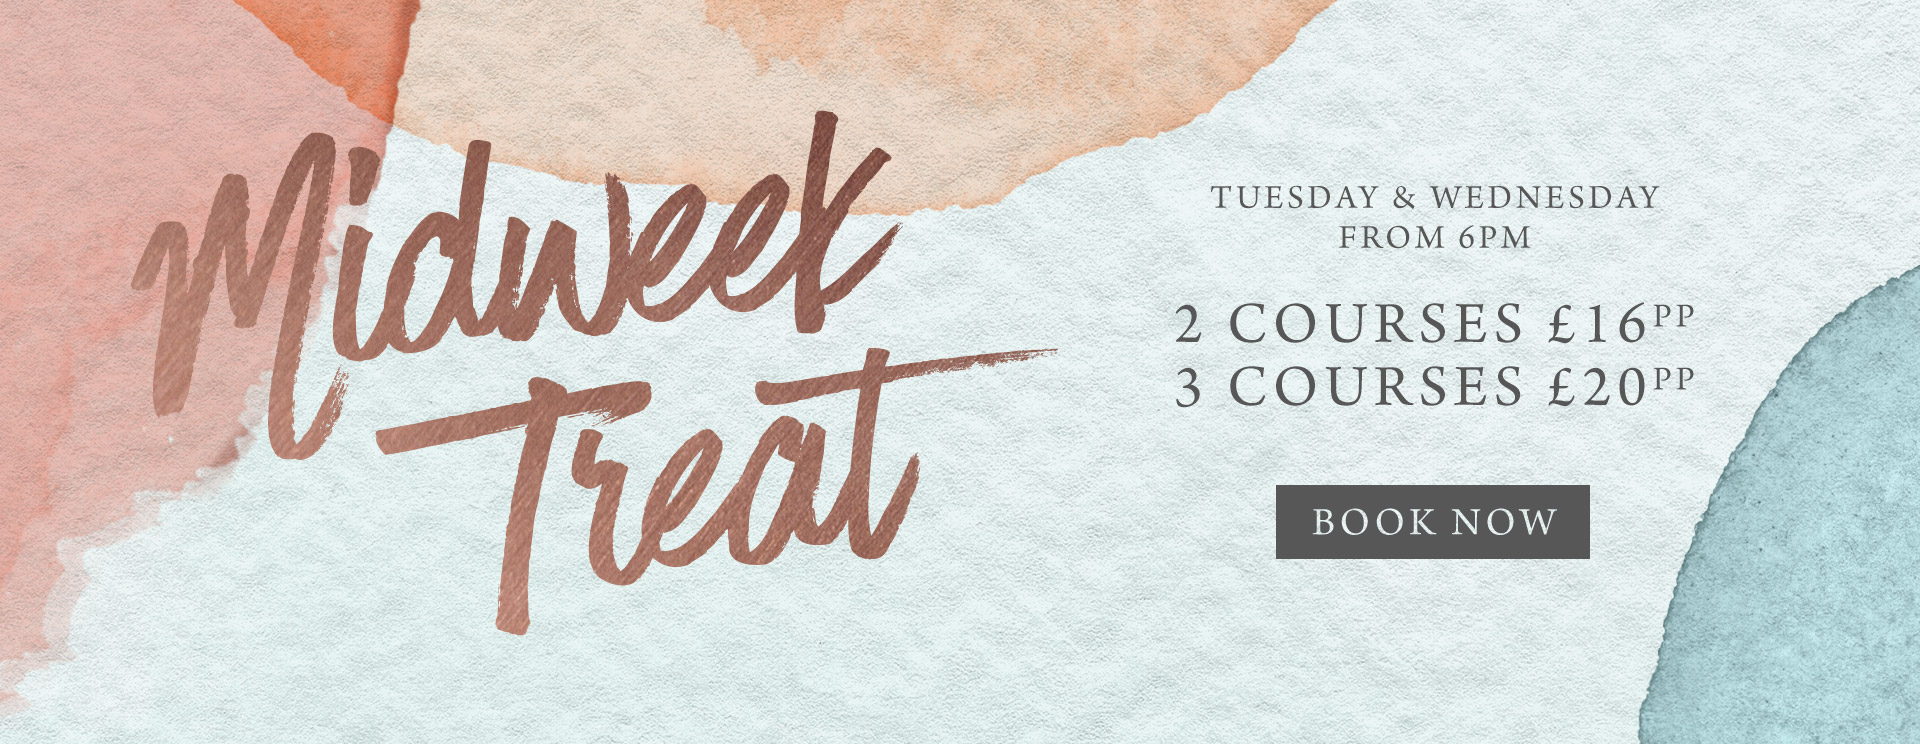 Midweek treat at The Black Horse - Book now